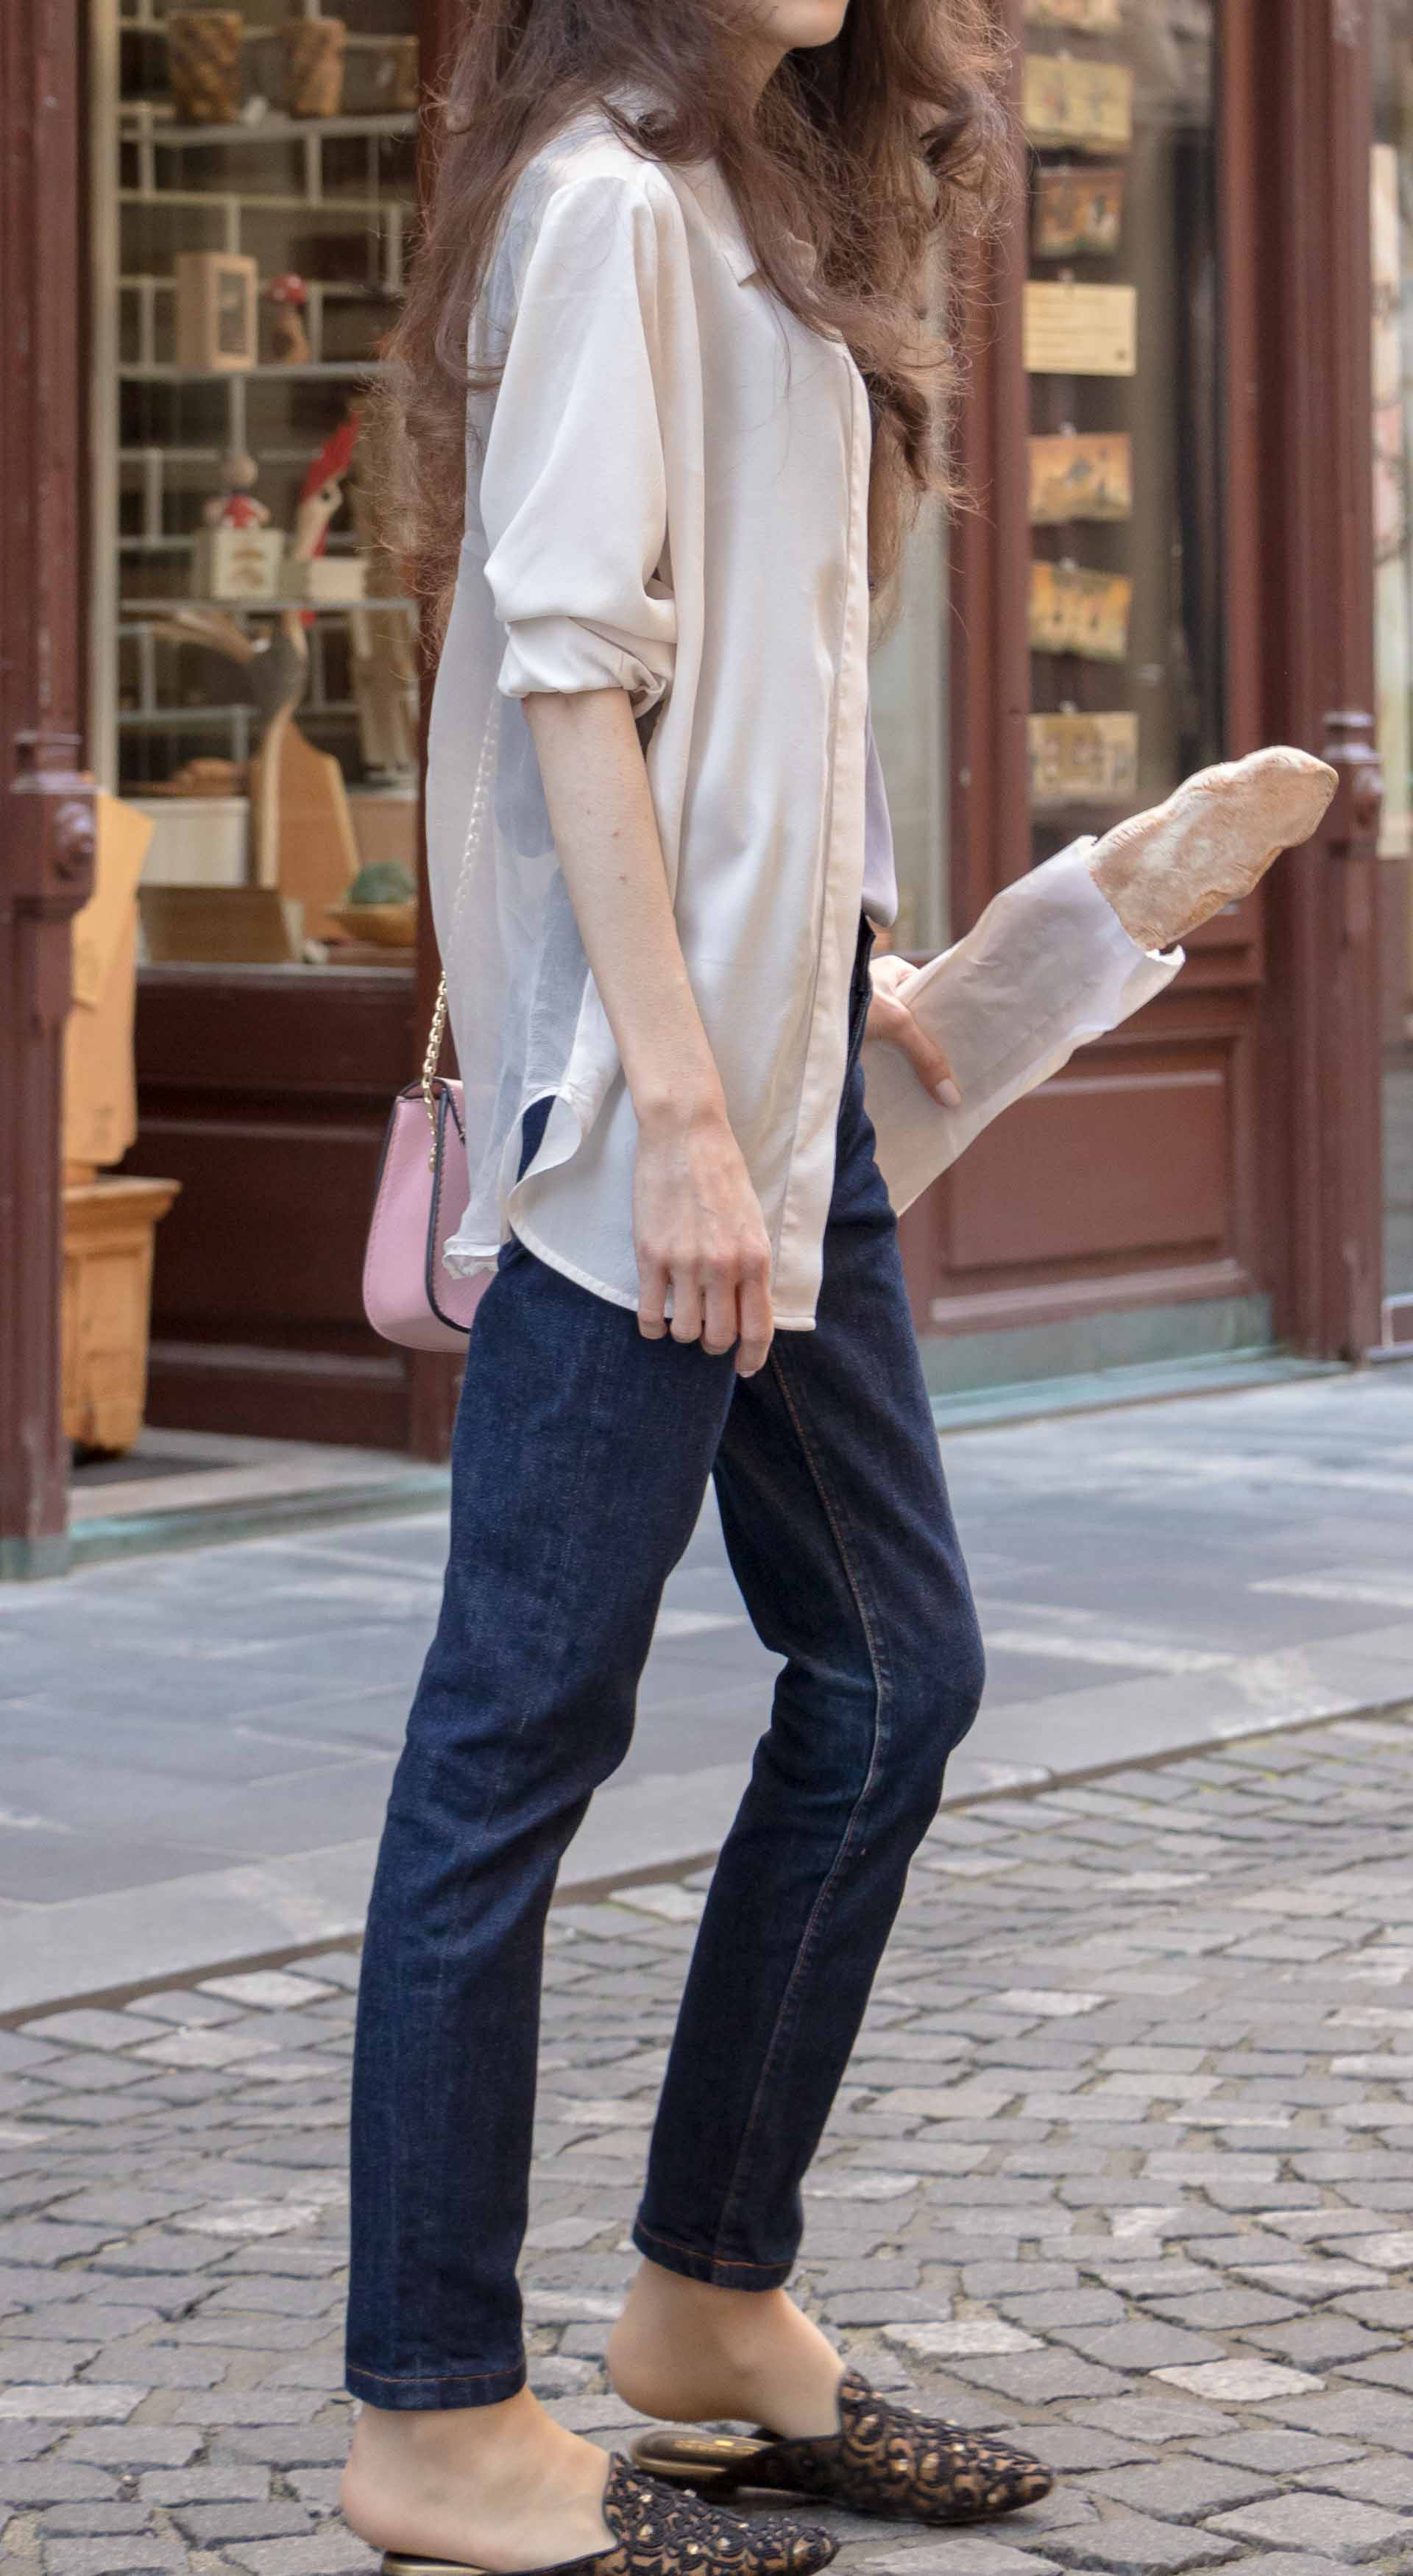 Fashion Blogger Veronika Lipar of Brunette from Wall Street wearing white transparent shirt with transparent back from Sandro Paris, grey silk slip top, A.P.C. dark denim jeans, mules, pink Furla shoulder bag, on her way from the bakery